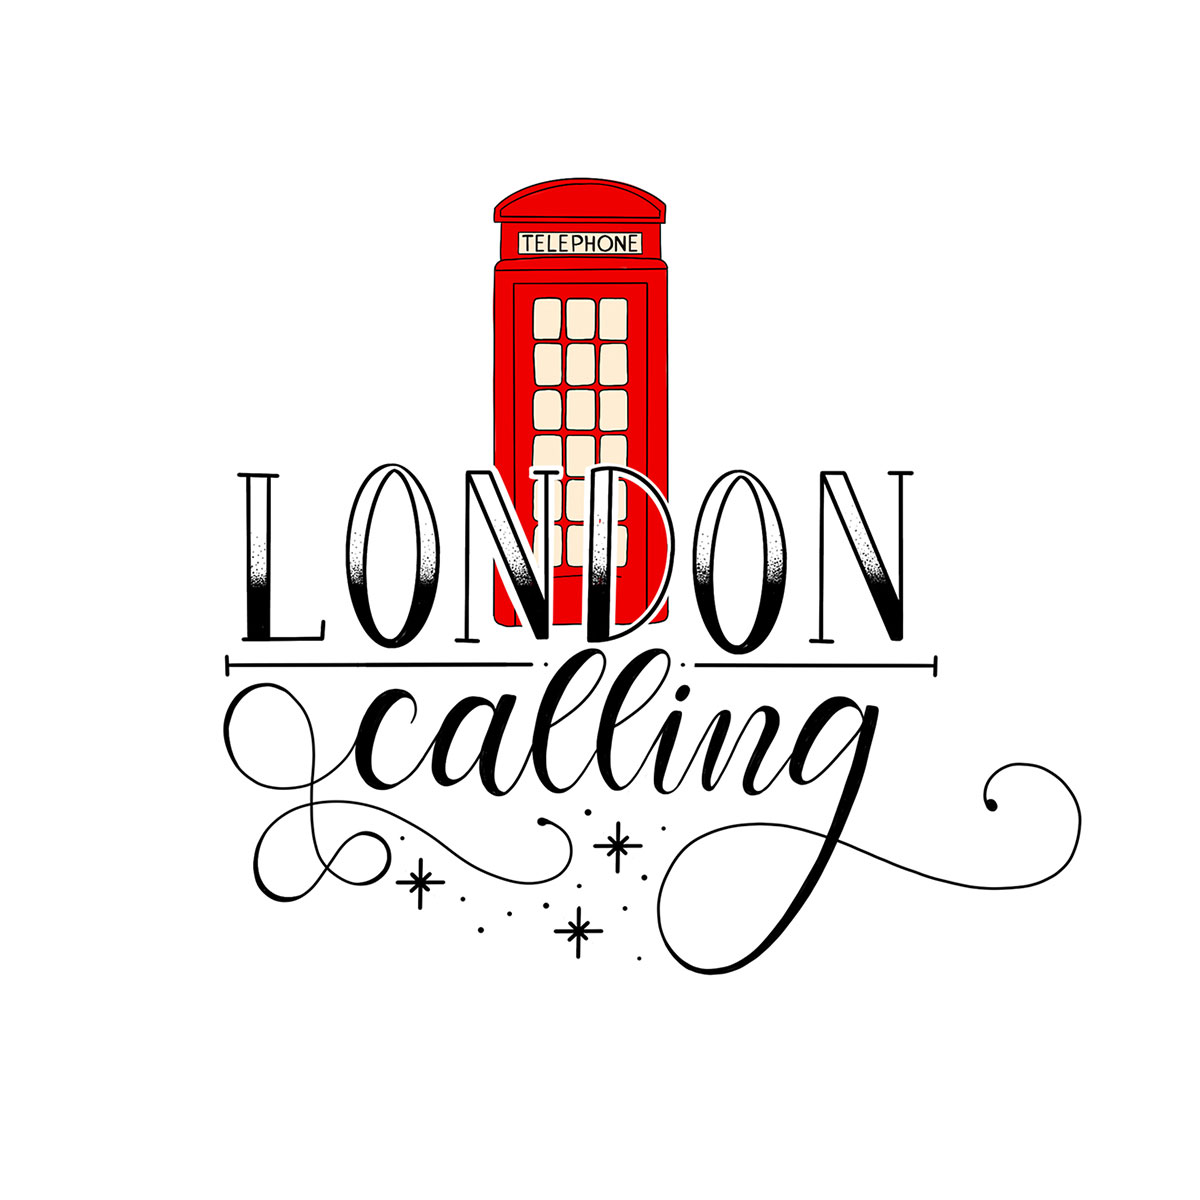 Lettering - London calling!